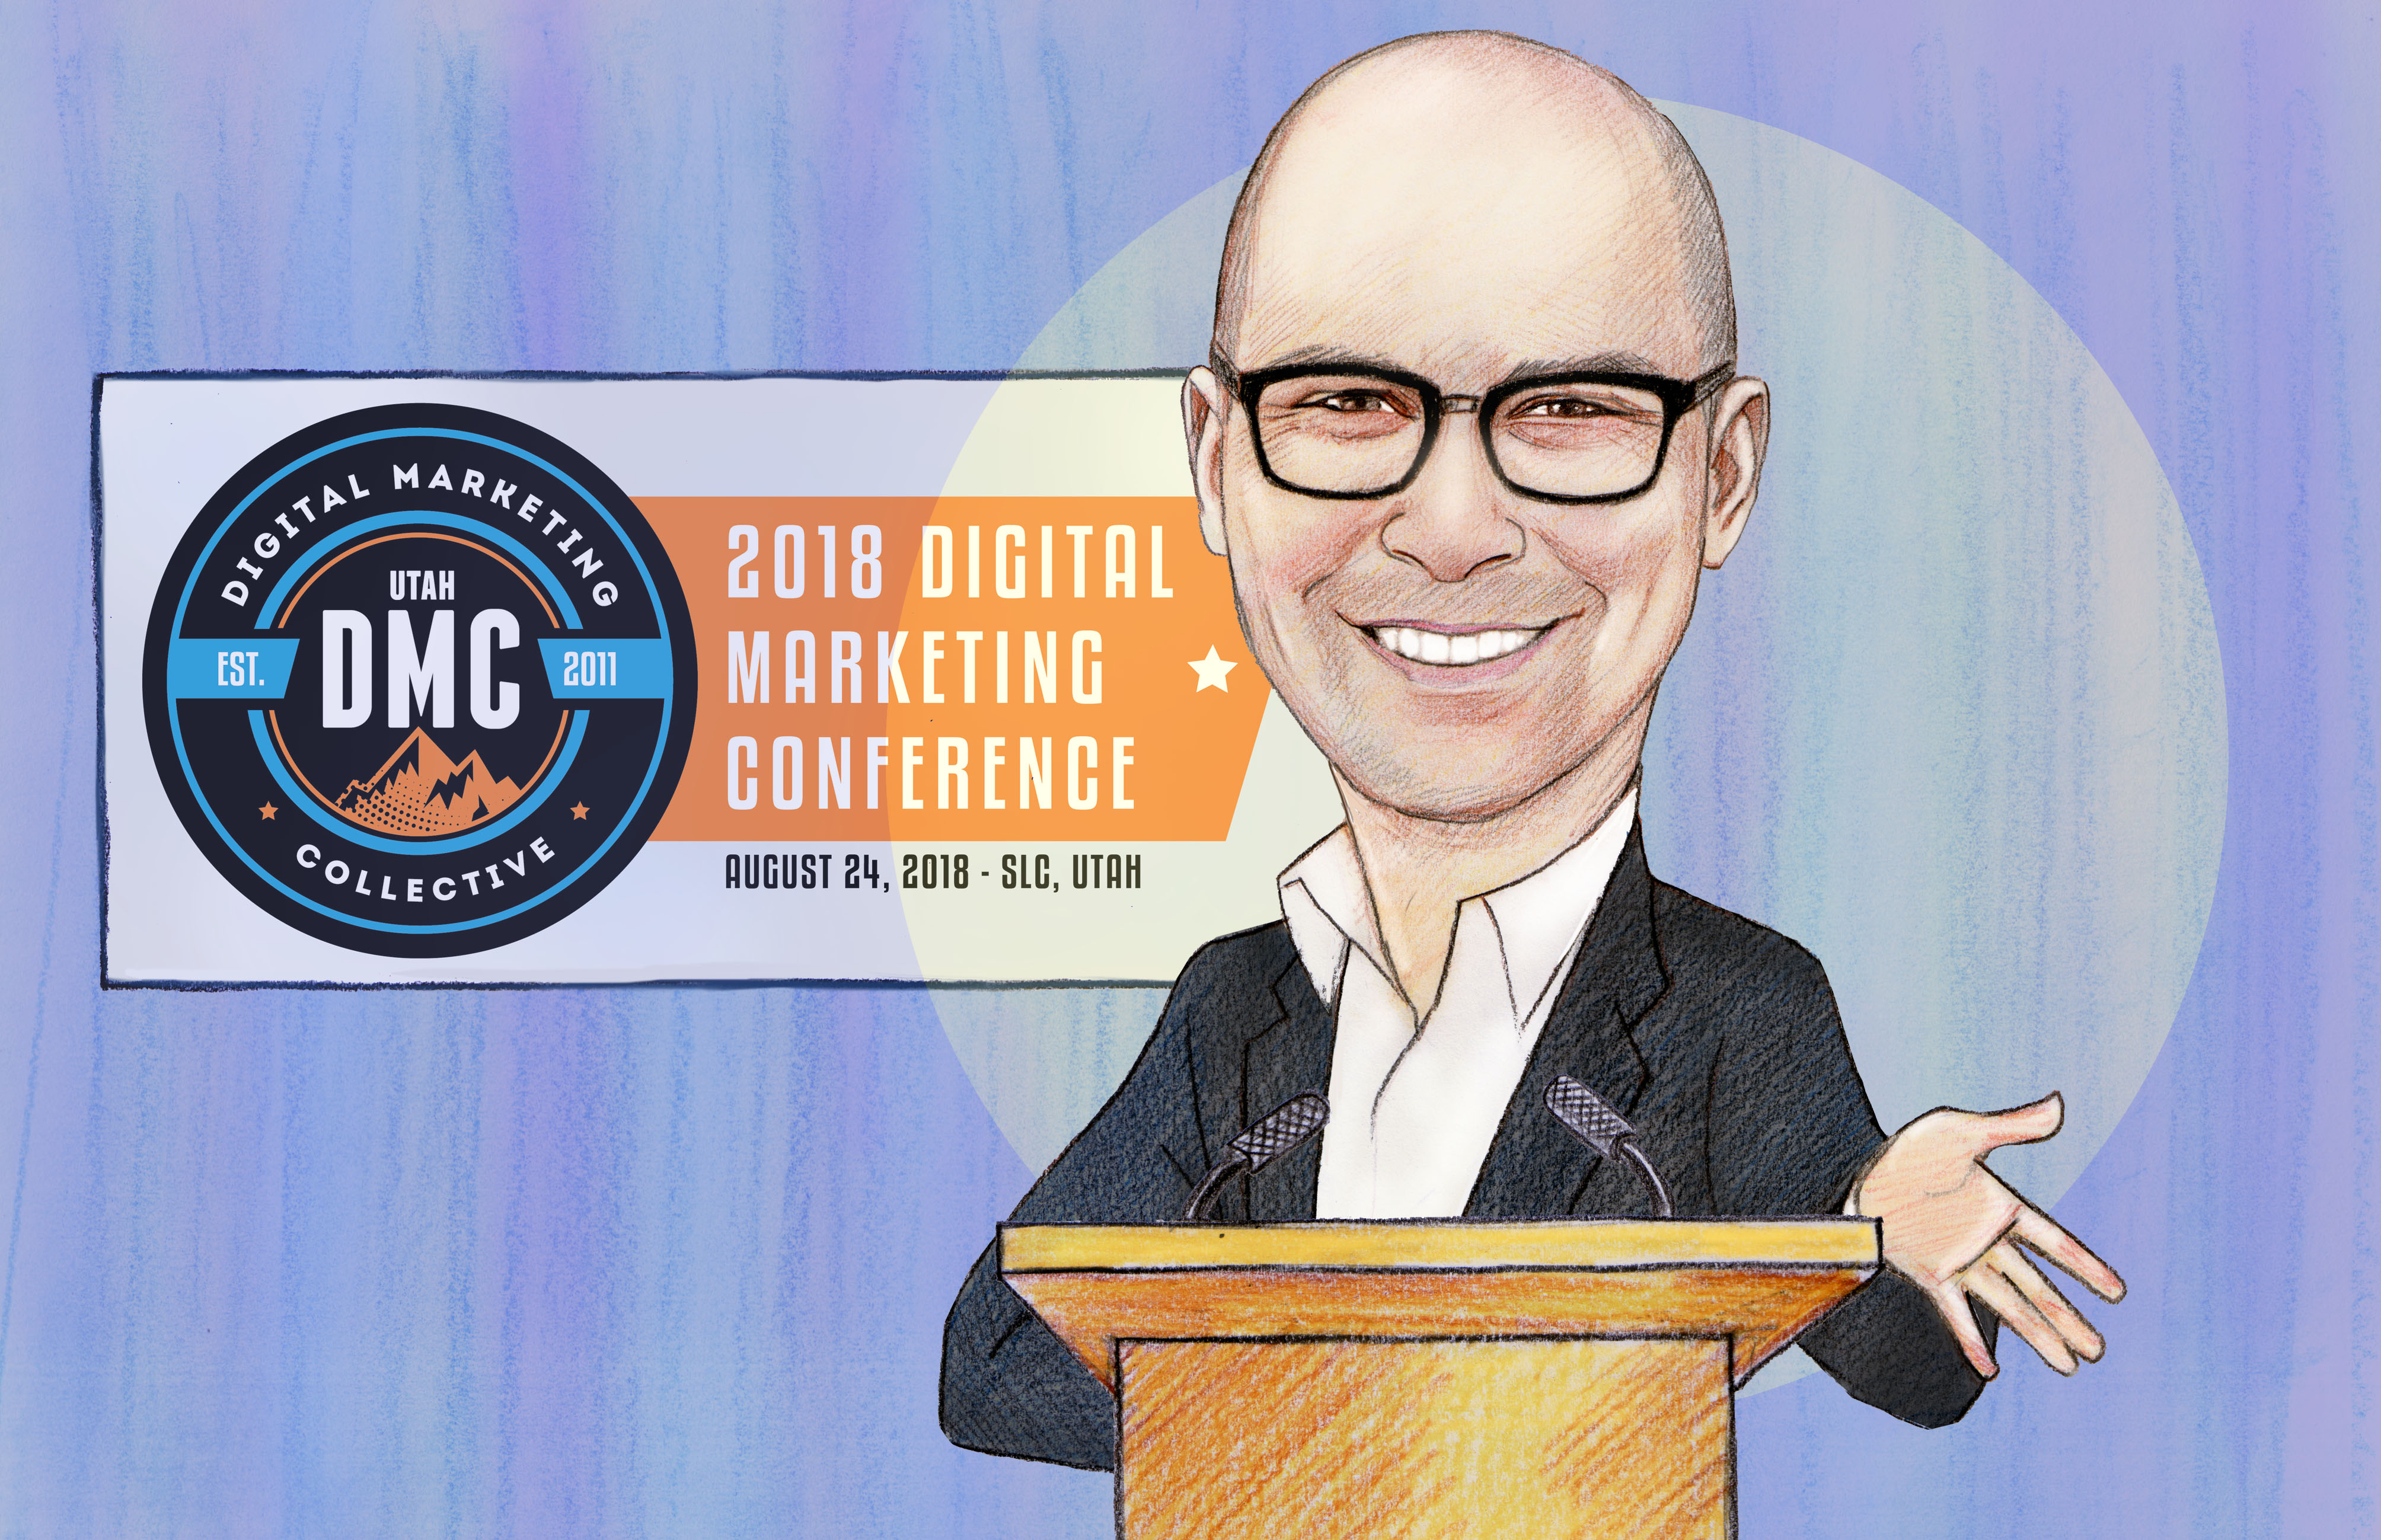 10 Conversion-Killing Copy Mistakes (And How to Fix Them) with Joel Klettke [DMC Recap]